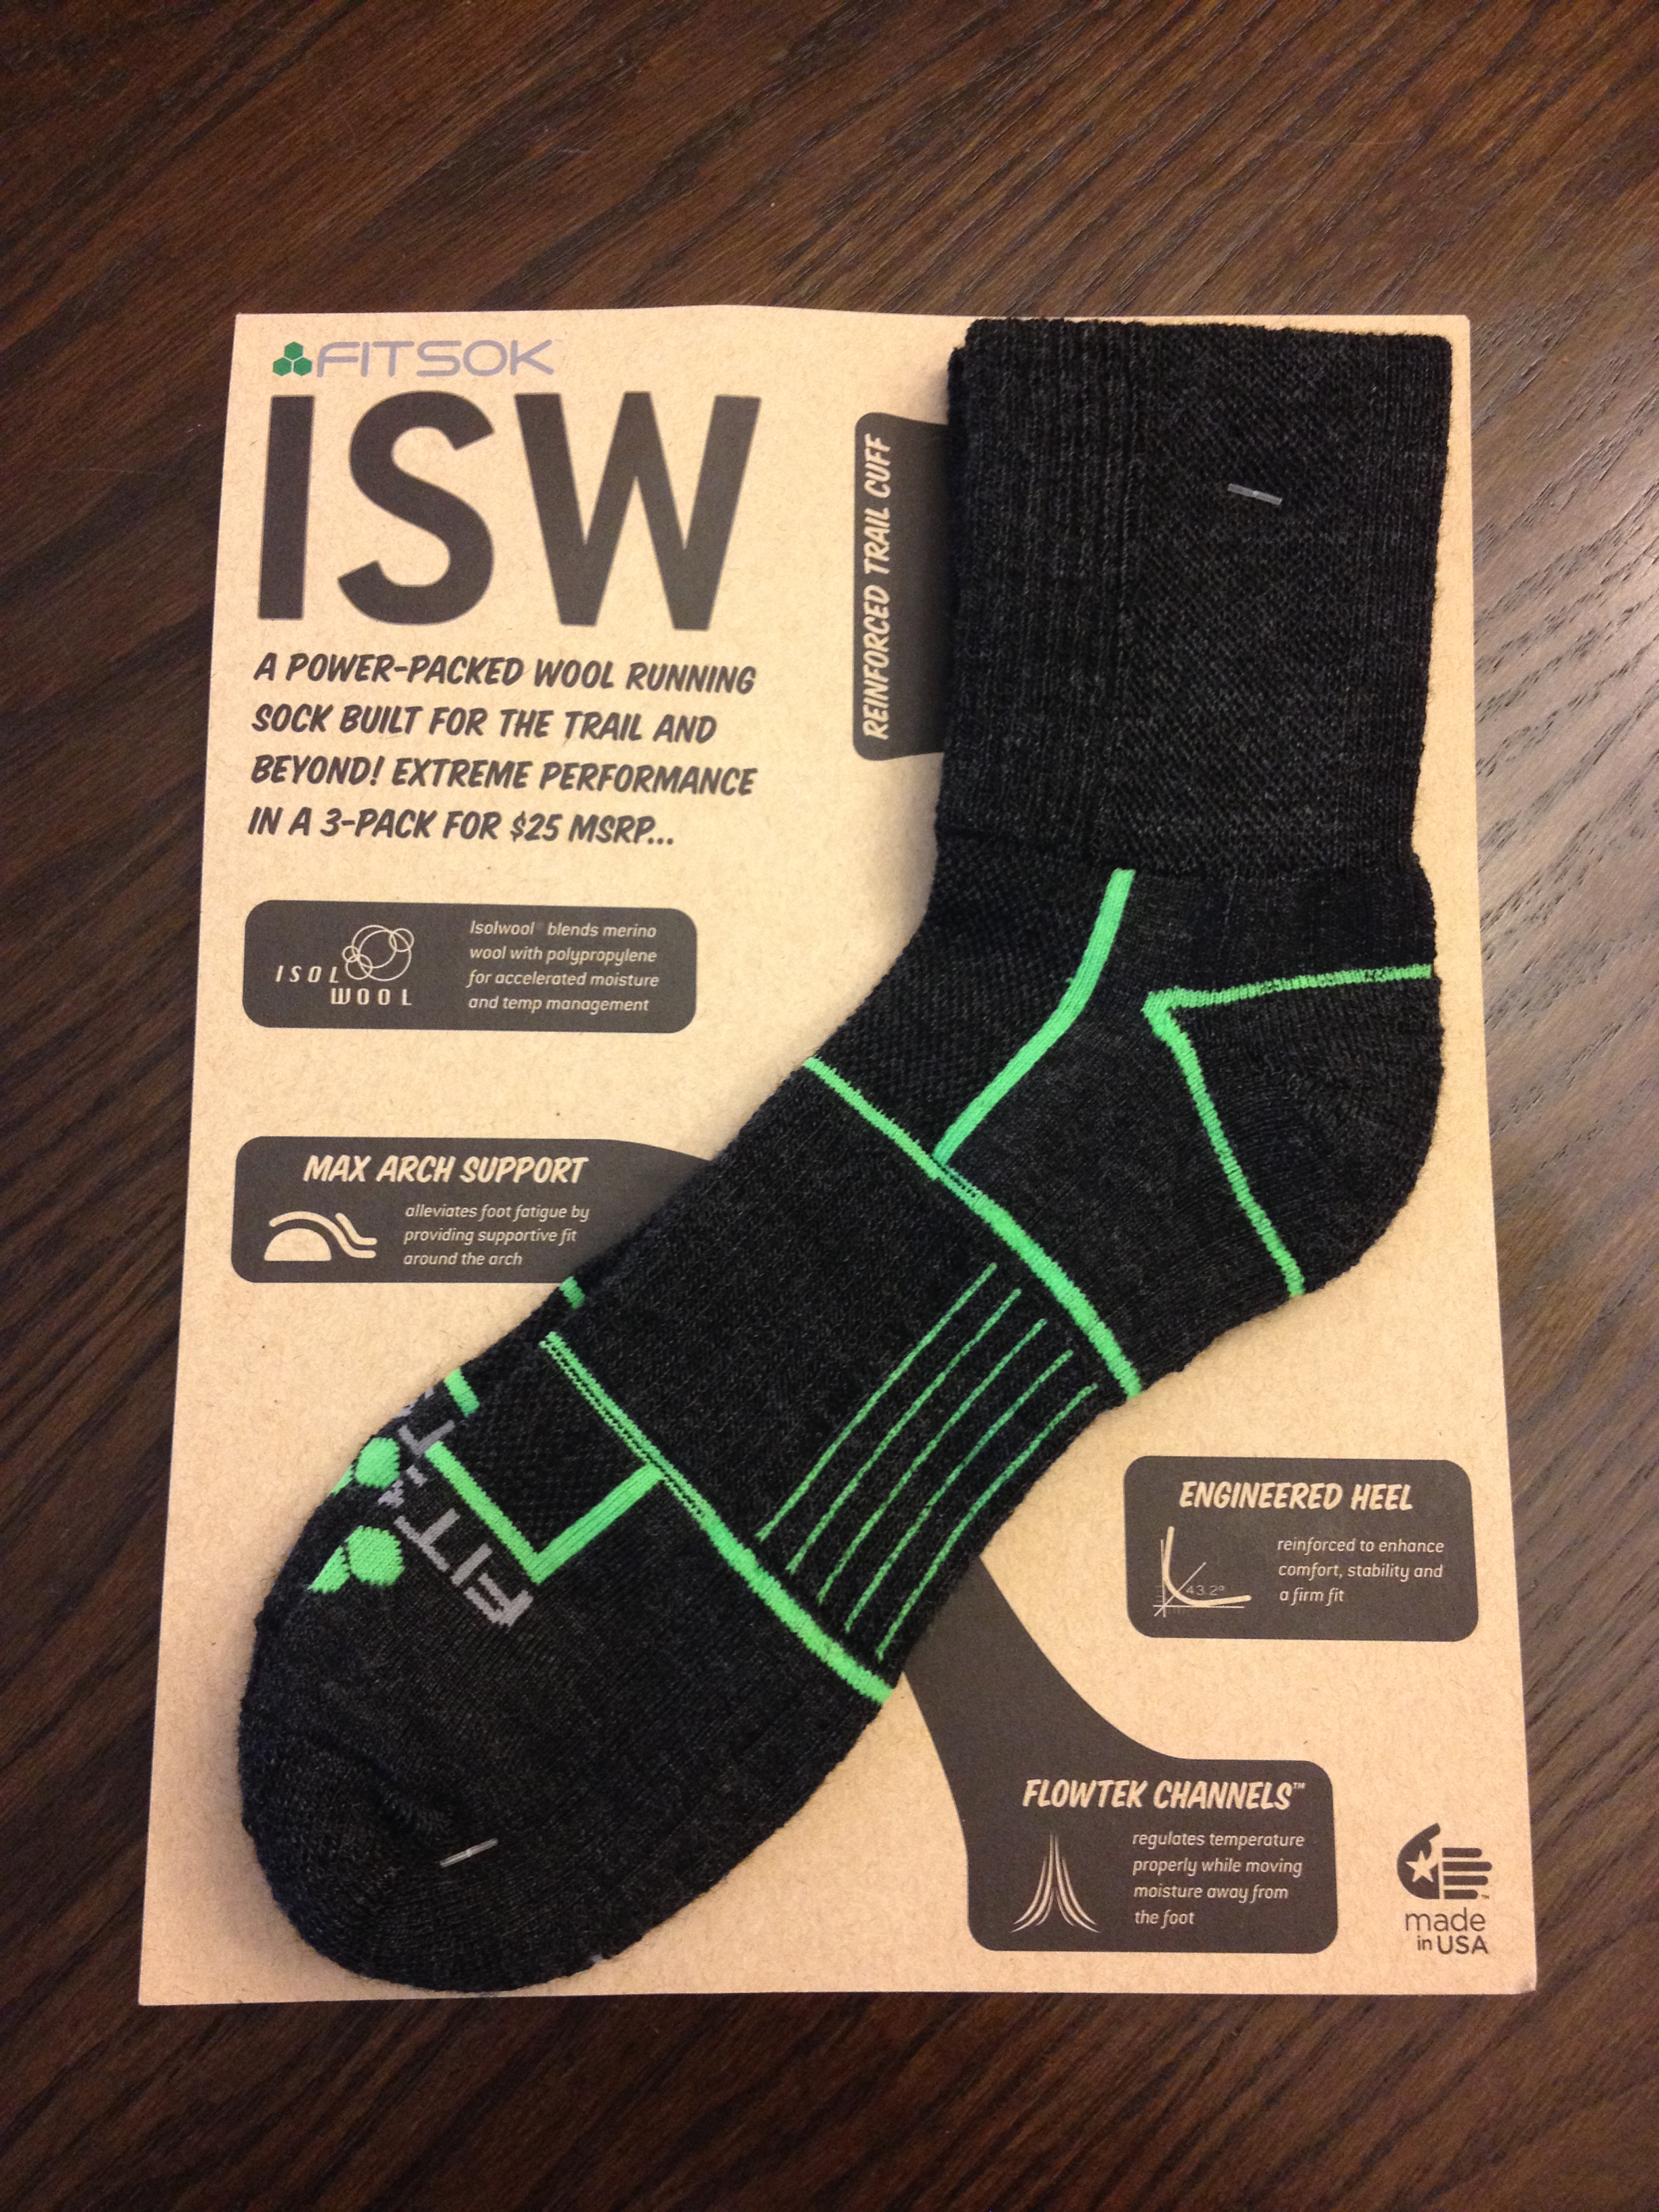 Gear Review: Fitsok ISW Wool Running